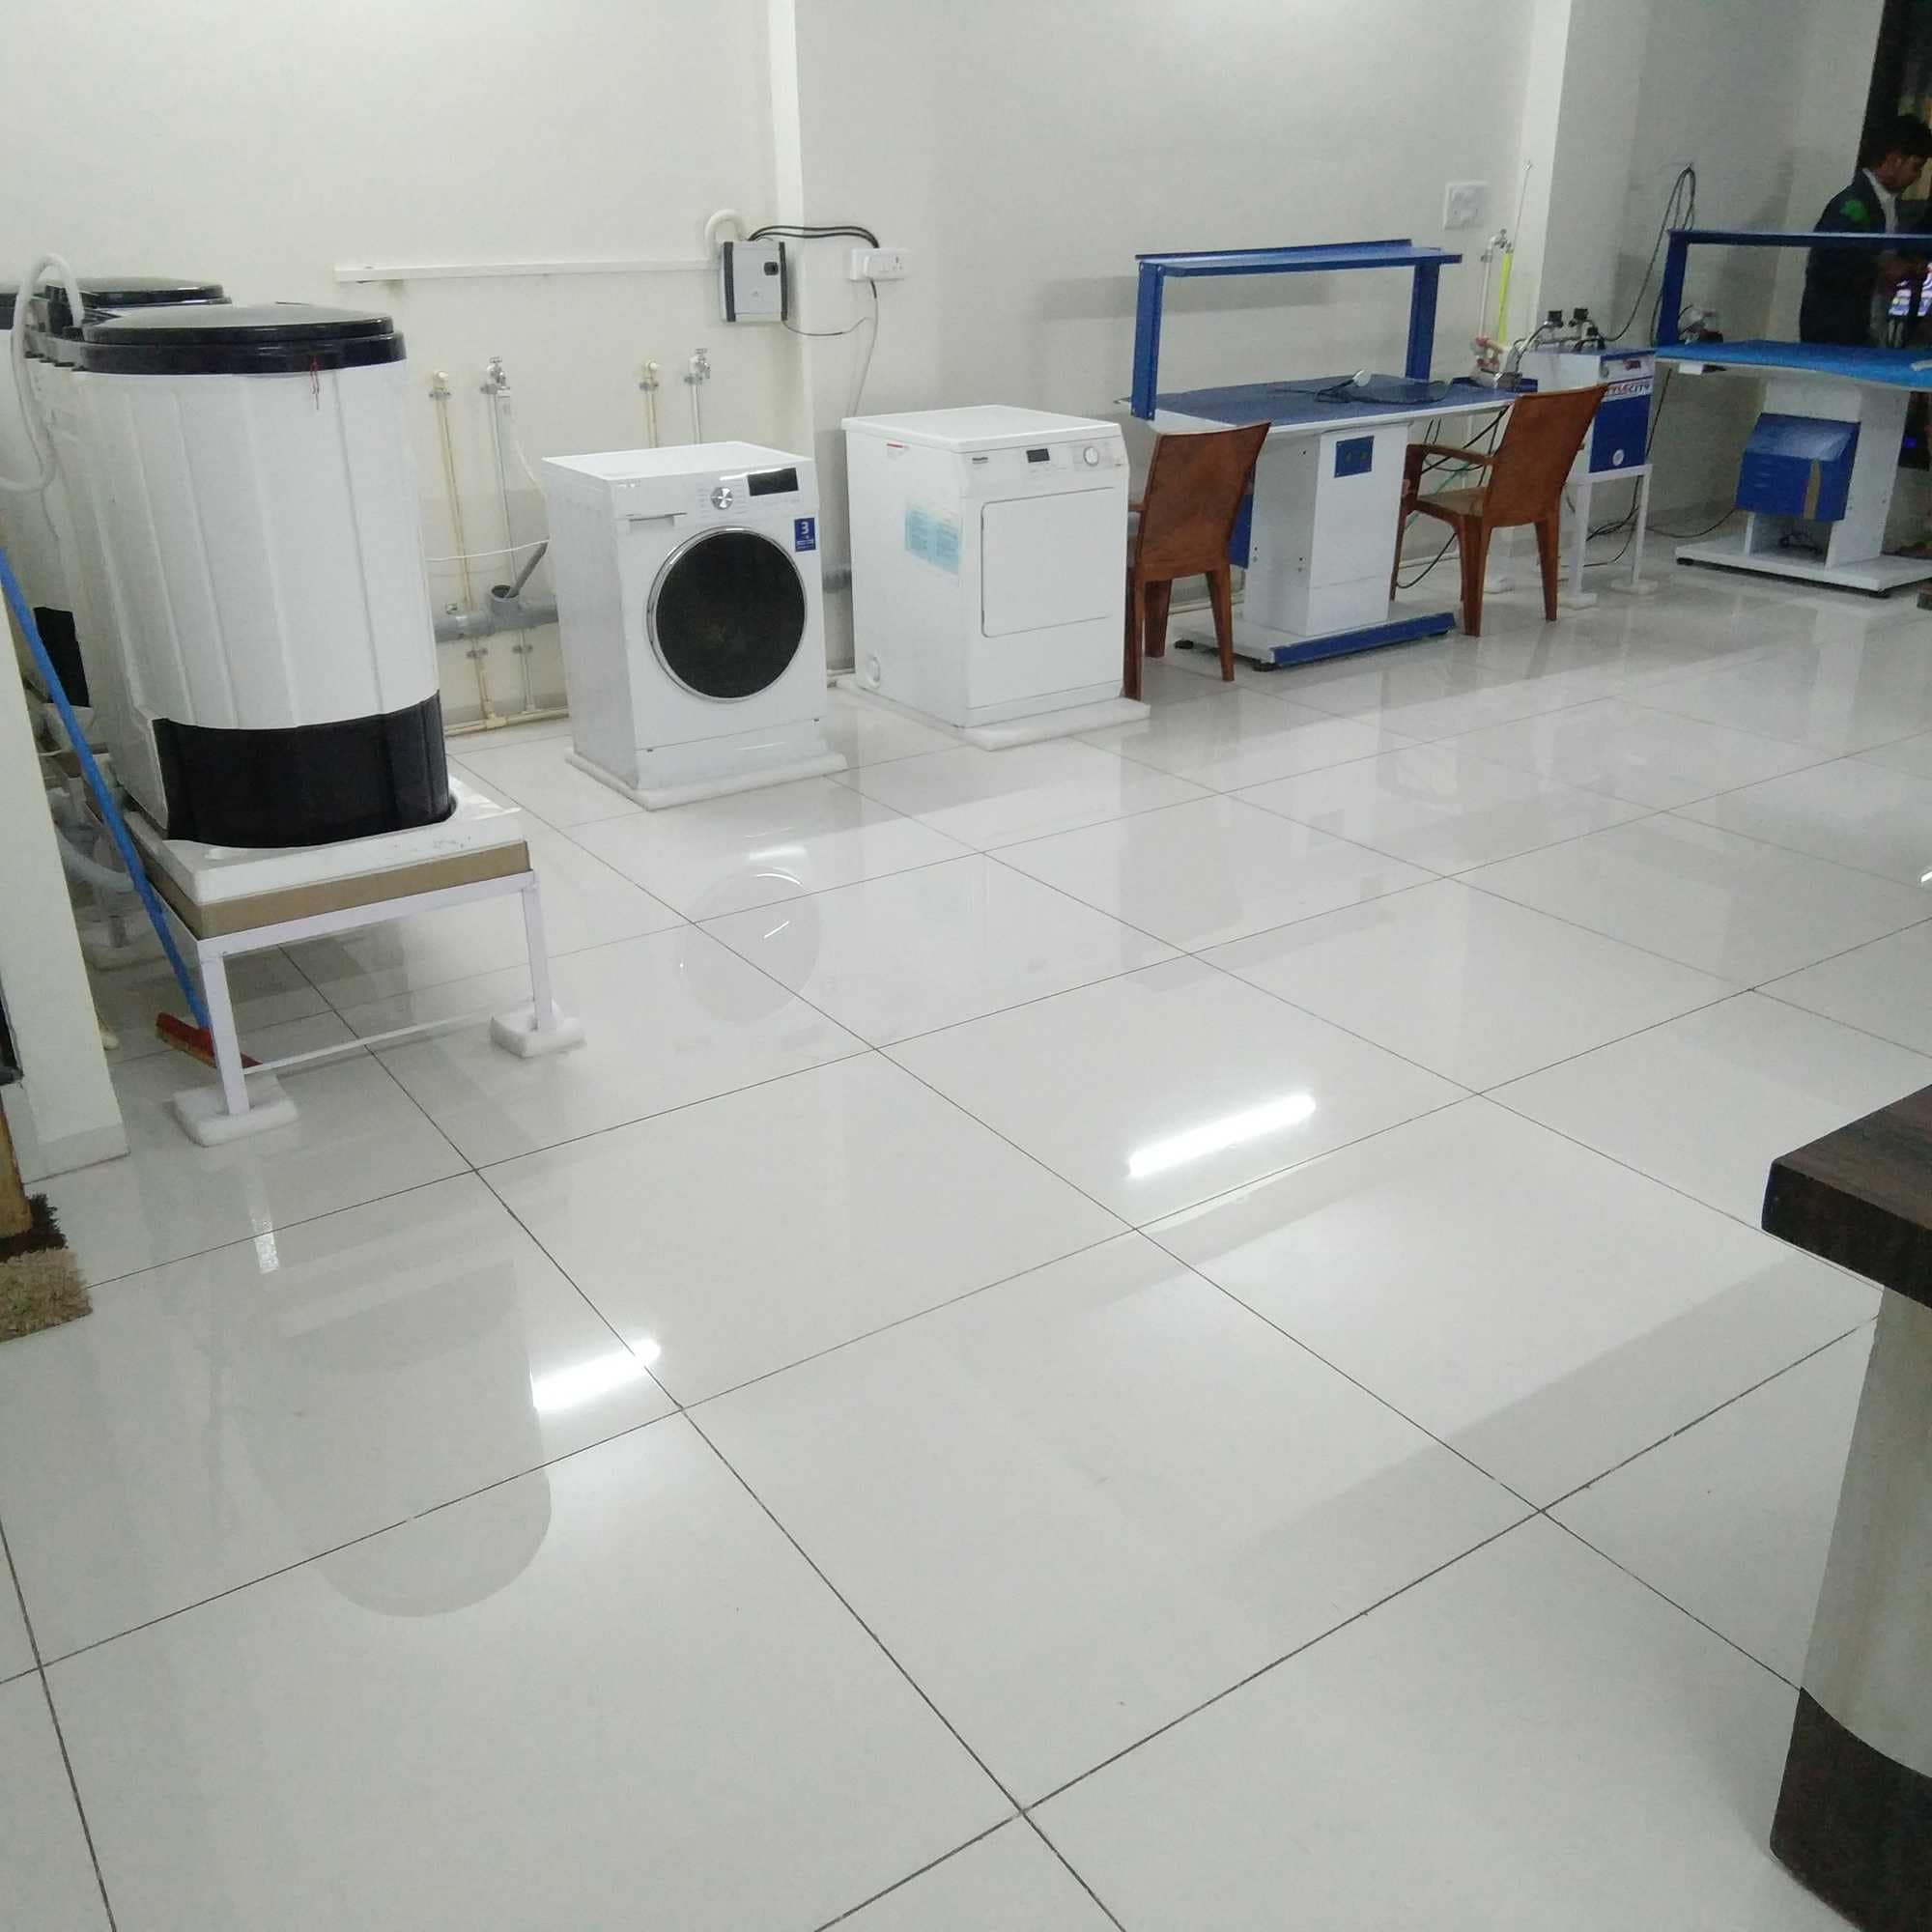 Dry Cleaners in Indore - Laundry Service - Justdial